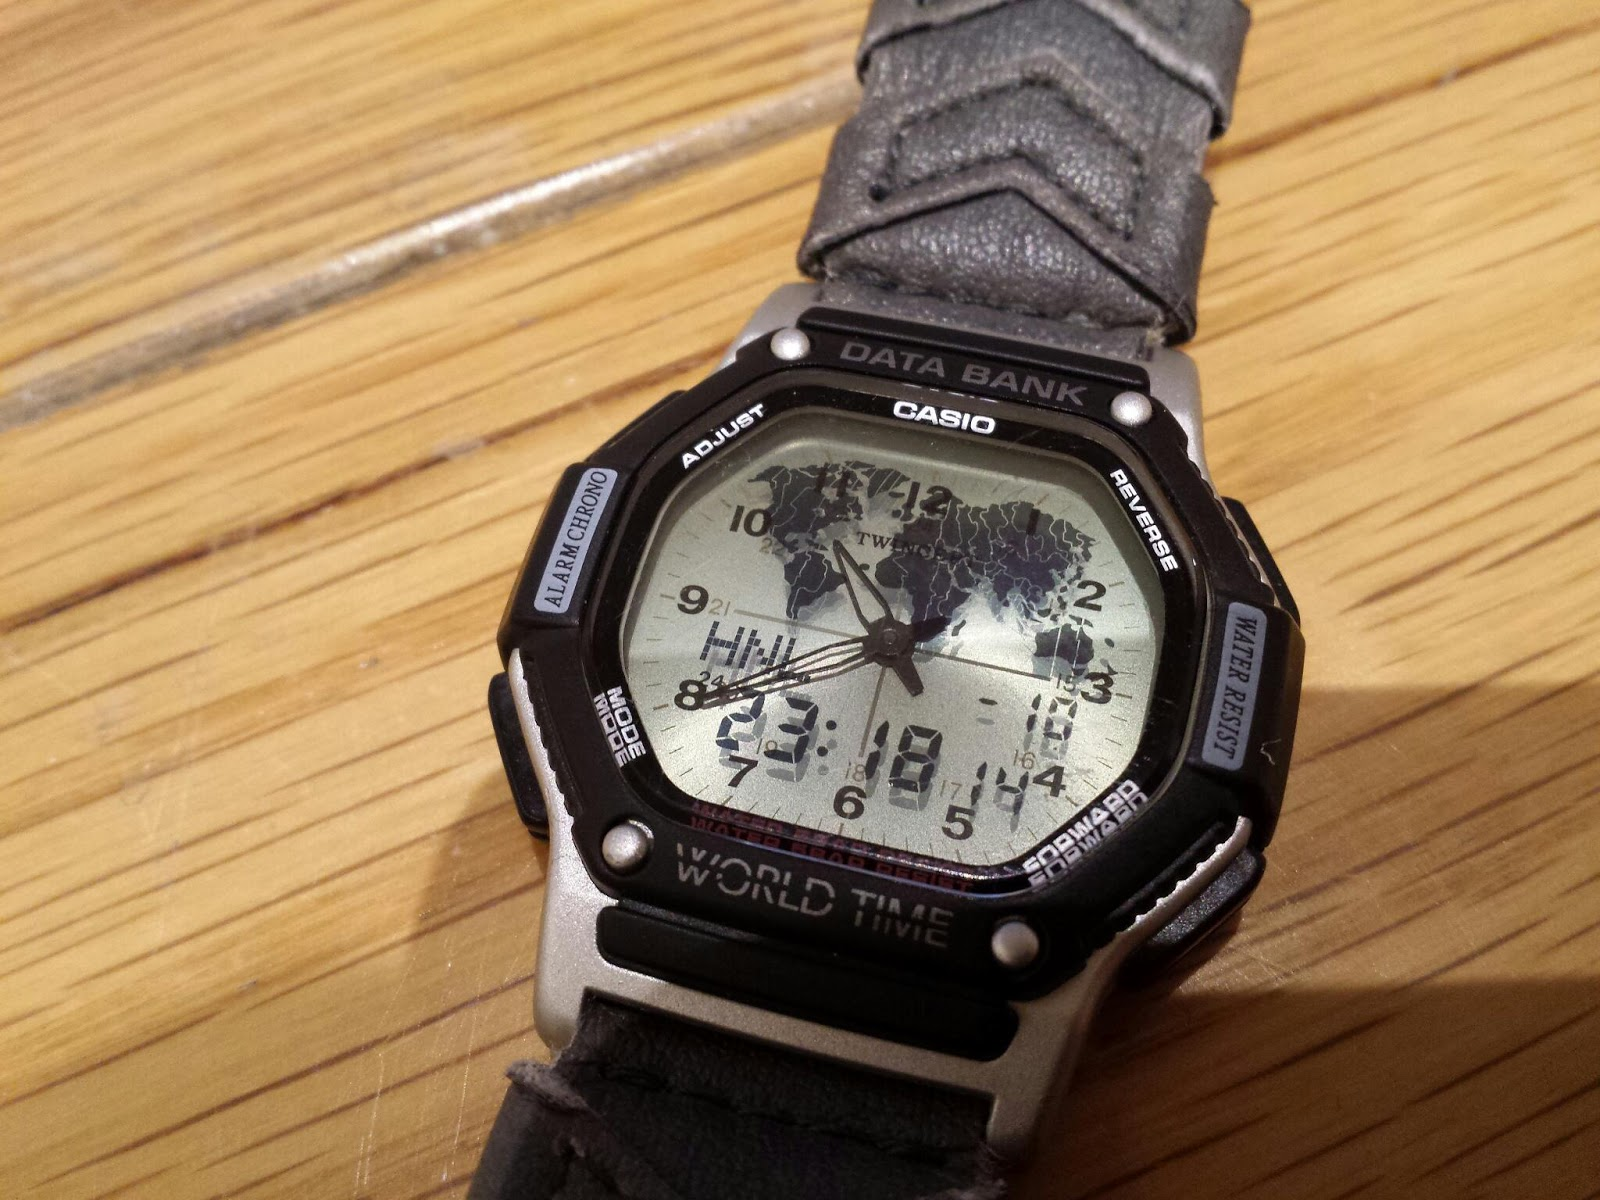 Which watch today casio twincept world time data bank abx 58 casio twincept world time data bank abx 58 gumiabroncs Choice Image